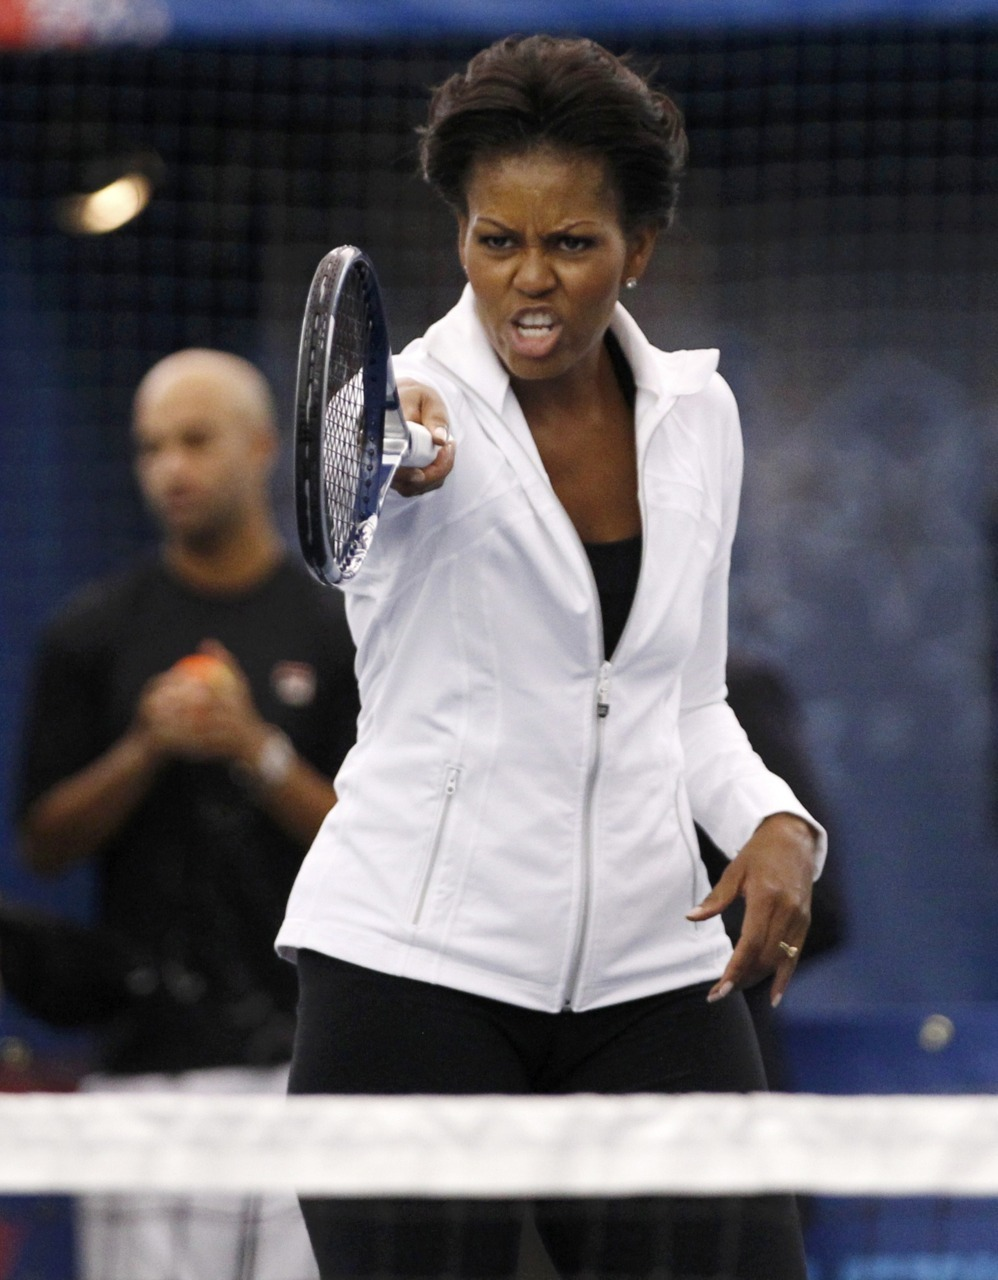 Today in politicians playing tennis: Michelle Obama at the U.S. Open. Mike Segar/Reuters